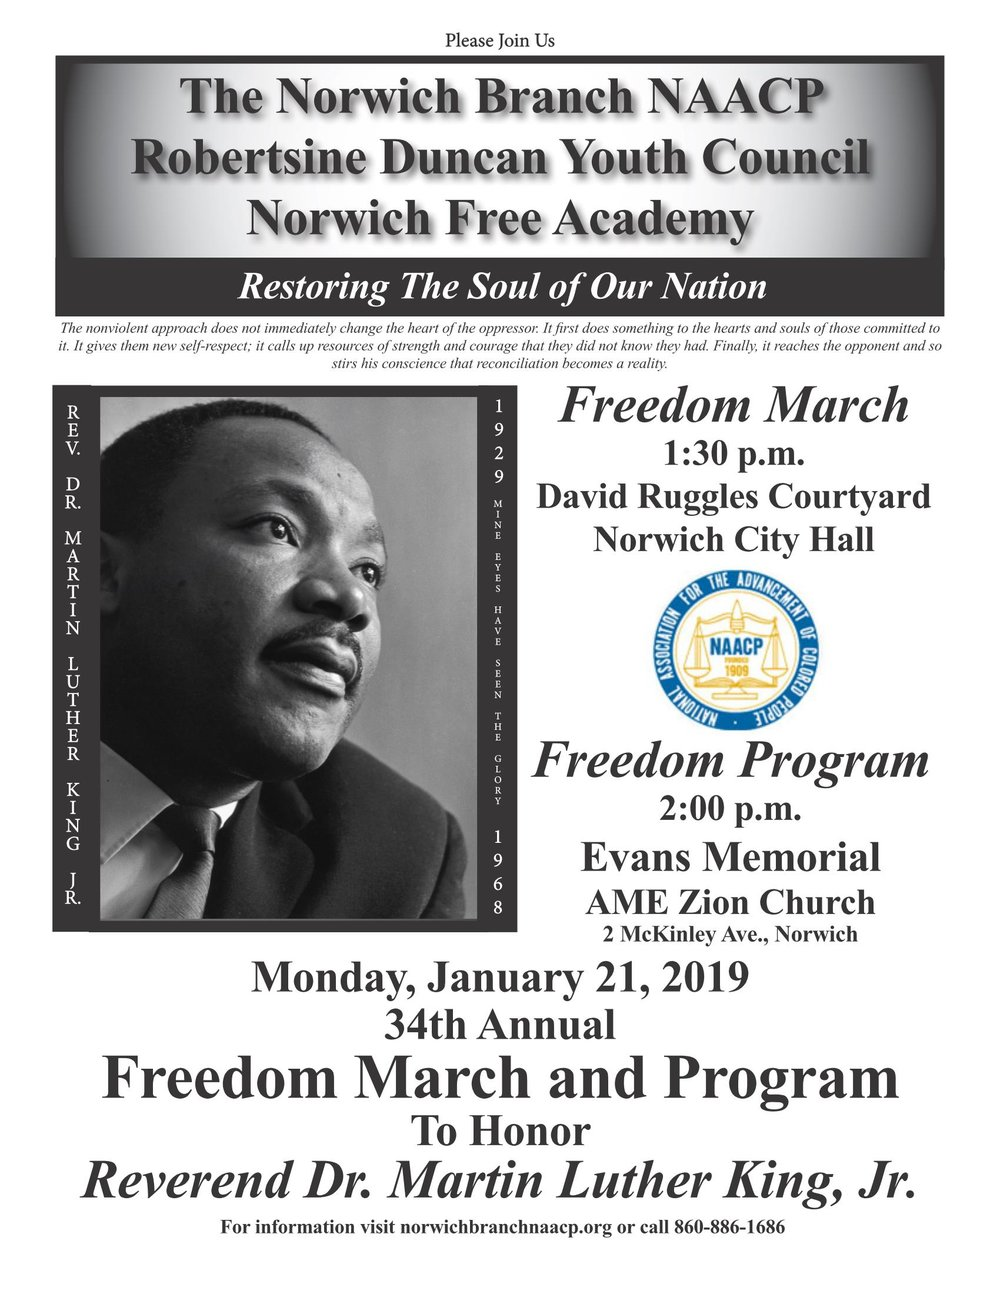 34th Annual Freedom March Program To Honor Reverend Dr Martin